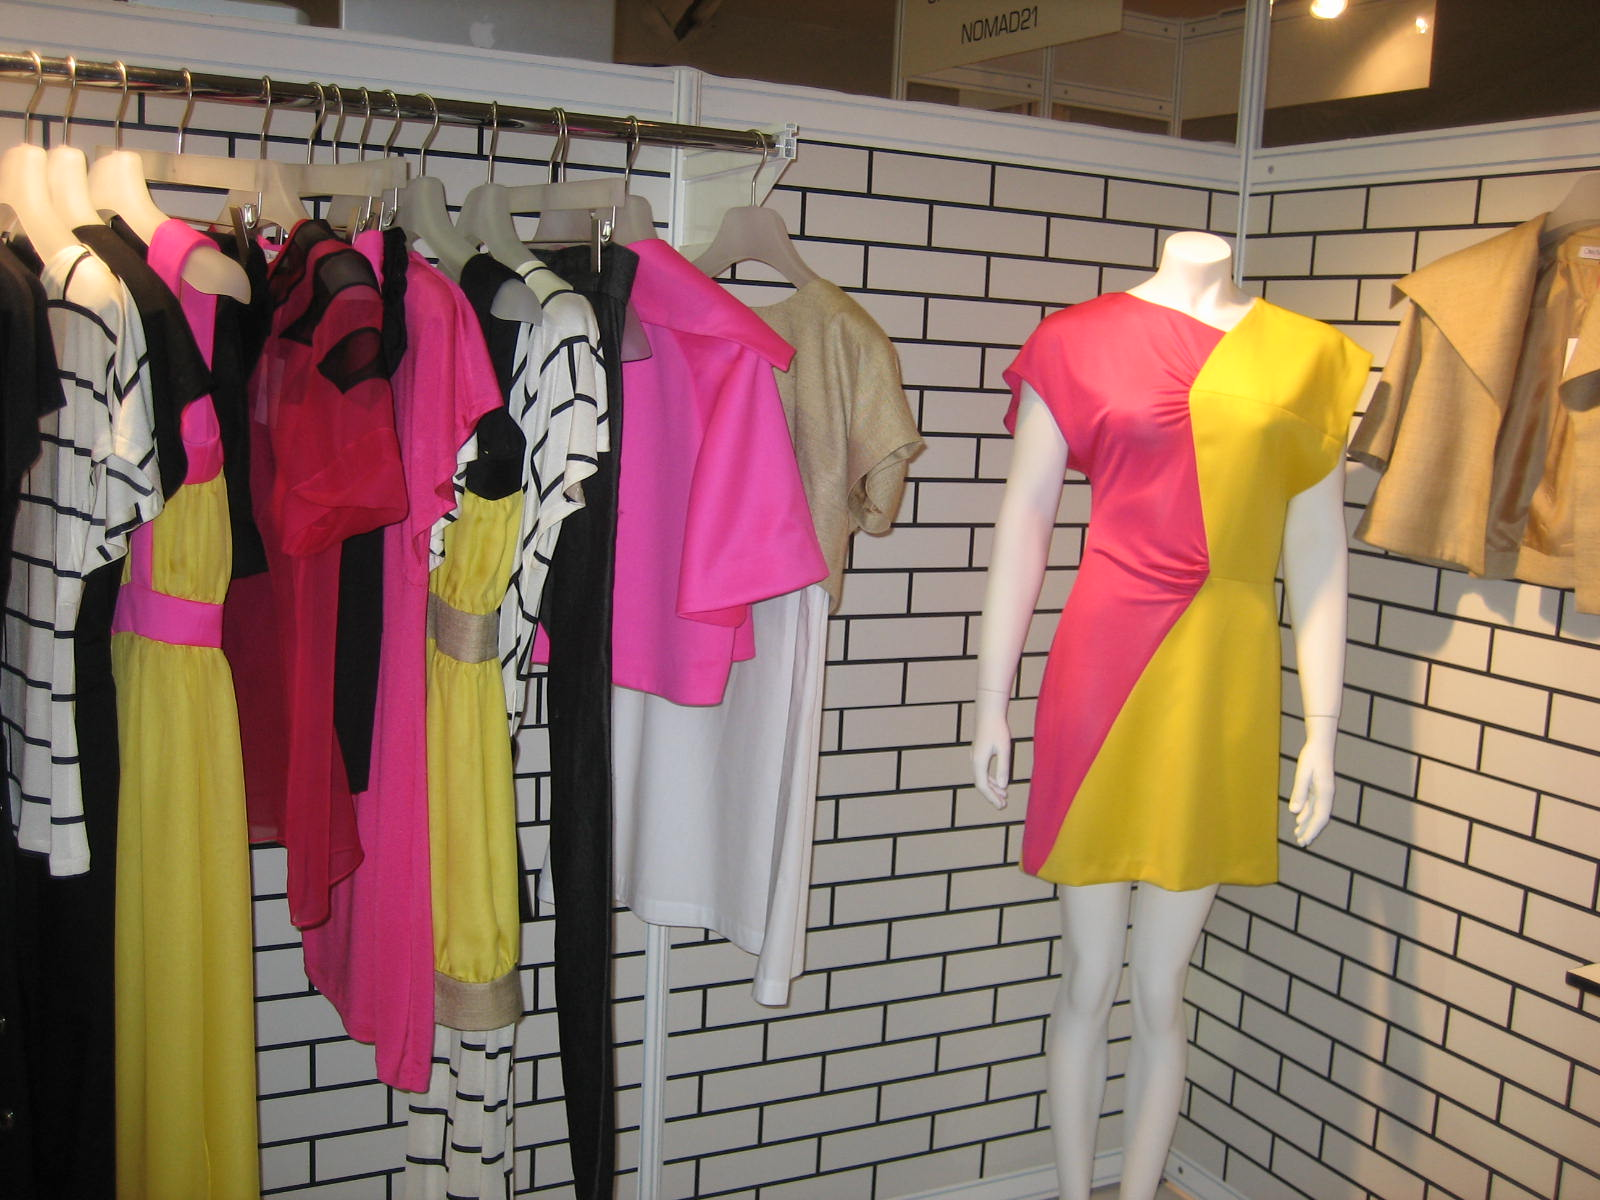 the exhibition at London Fashion Week